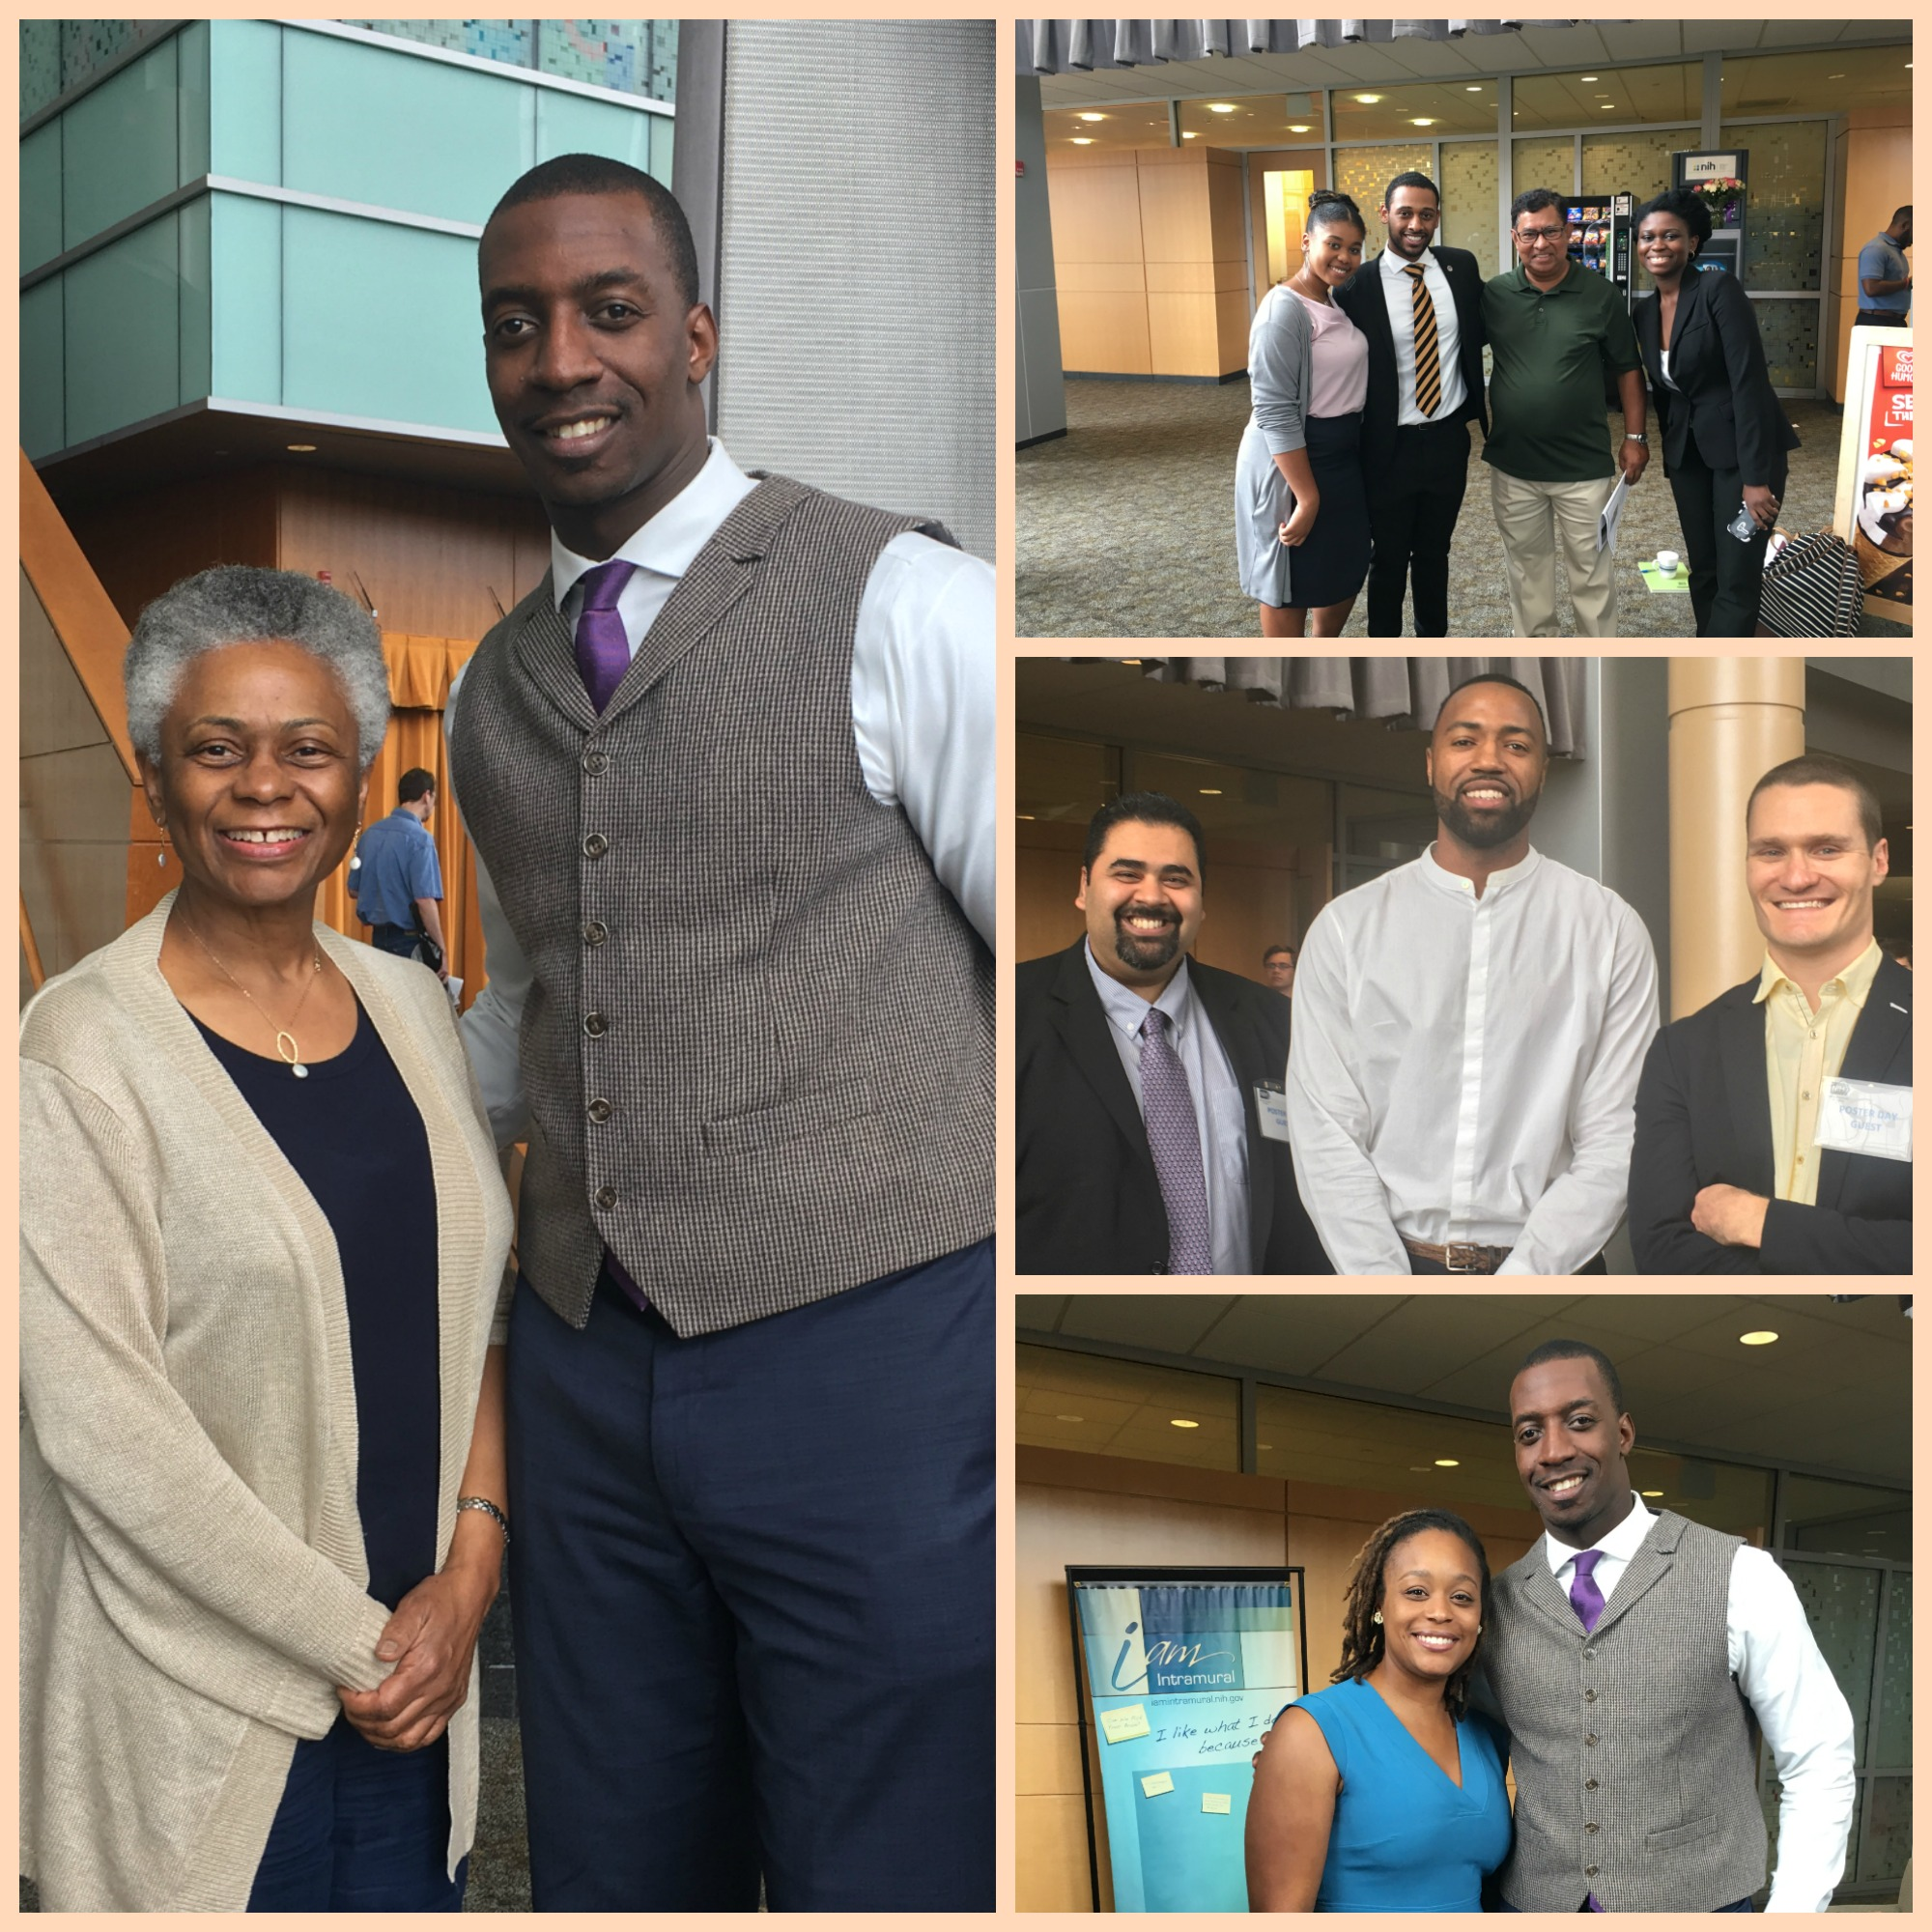 Left to right, clockwise, Dr. Torian Easterling and Dr. Marie Bernard, Deputy Director, NIA; 2017 Interns Kaysi Gray, Jonathan Legier, and Joycemary Amponsem with their Howard University mentor,  Dr. Atanu Duttaroy; Zameer Upadhya, MHA, CEO, Platinum Premier Global Equity, Summer Class 1998 & 1999, Royce Hamilton, MPH, Informatics Specialist, Public Health Laboratories, Summer 2013, Shawn Rose, M.D., Ph.D., Medical Director Immunoscience, Exploratory Clinical &  Translational Research, Summer Class 1998 & 1999; Dr. Torian  Easterling and Patrice Moss, Ph.D., Clare Boothe Luce Assistant Professor of Biochemistry, Trinity Washington University, Summer Class, 2002